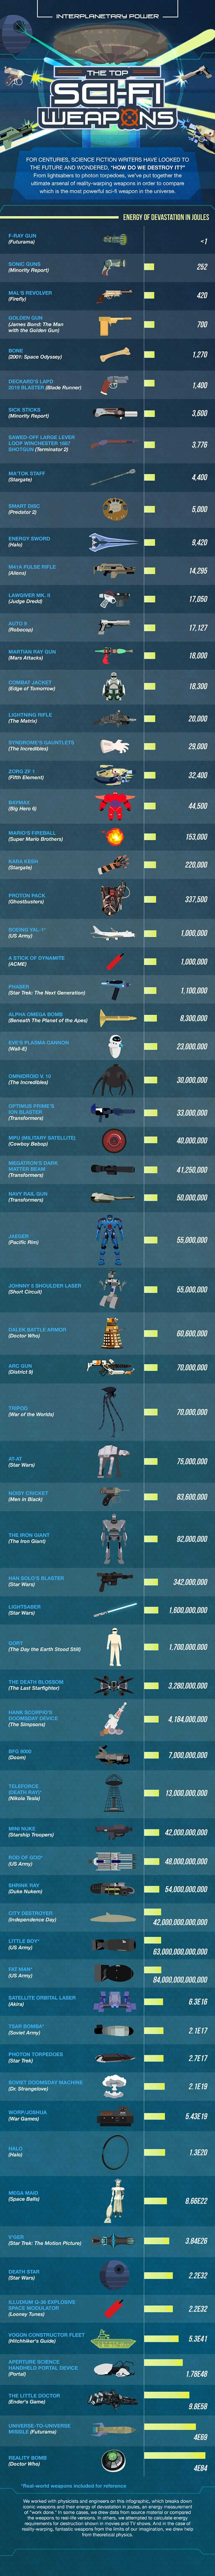 What are the top weapons in science fiction? #infographic